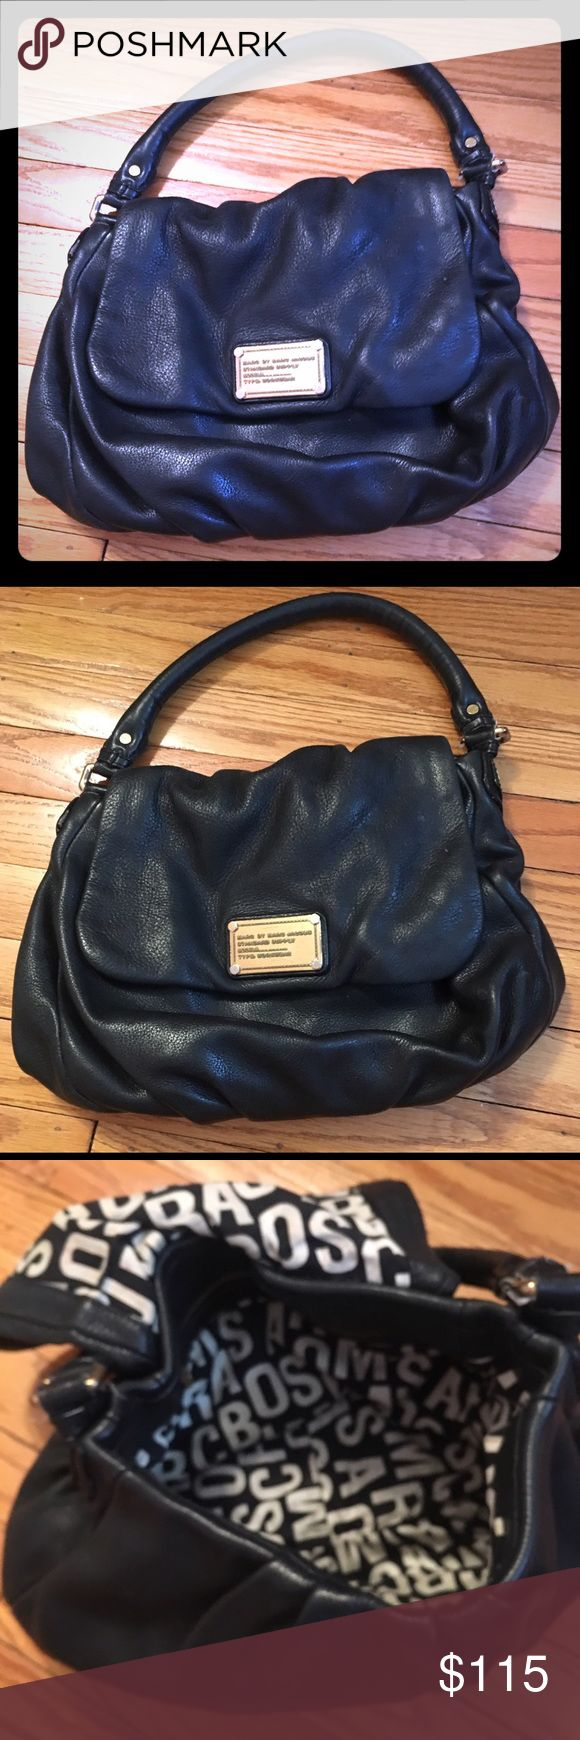 Marc Jacobs purse In good used condition missing long strap Marc Jacobs Bags Satchels